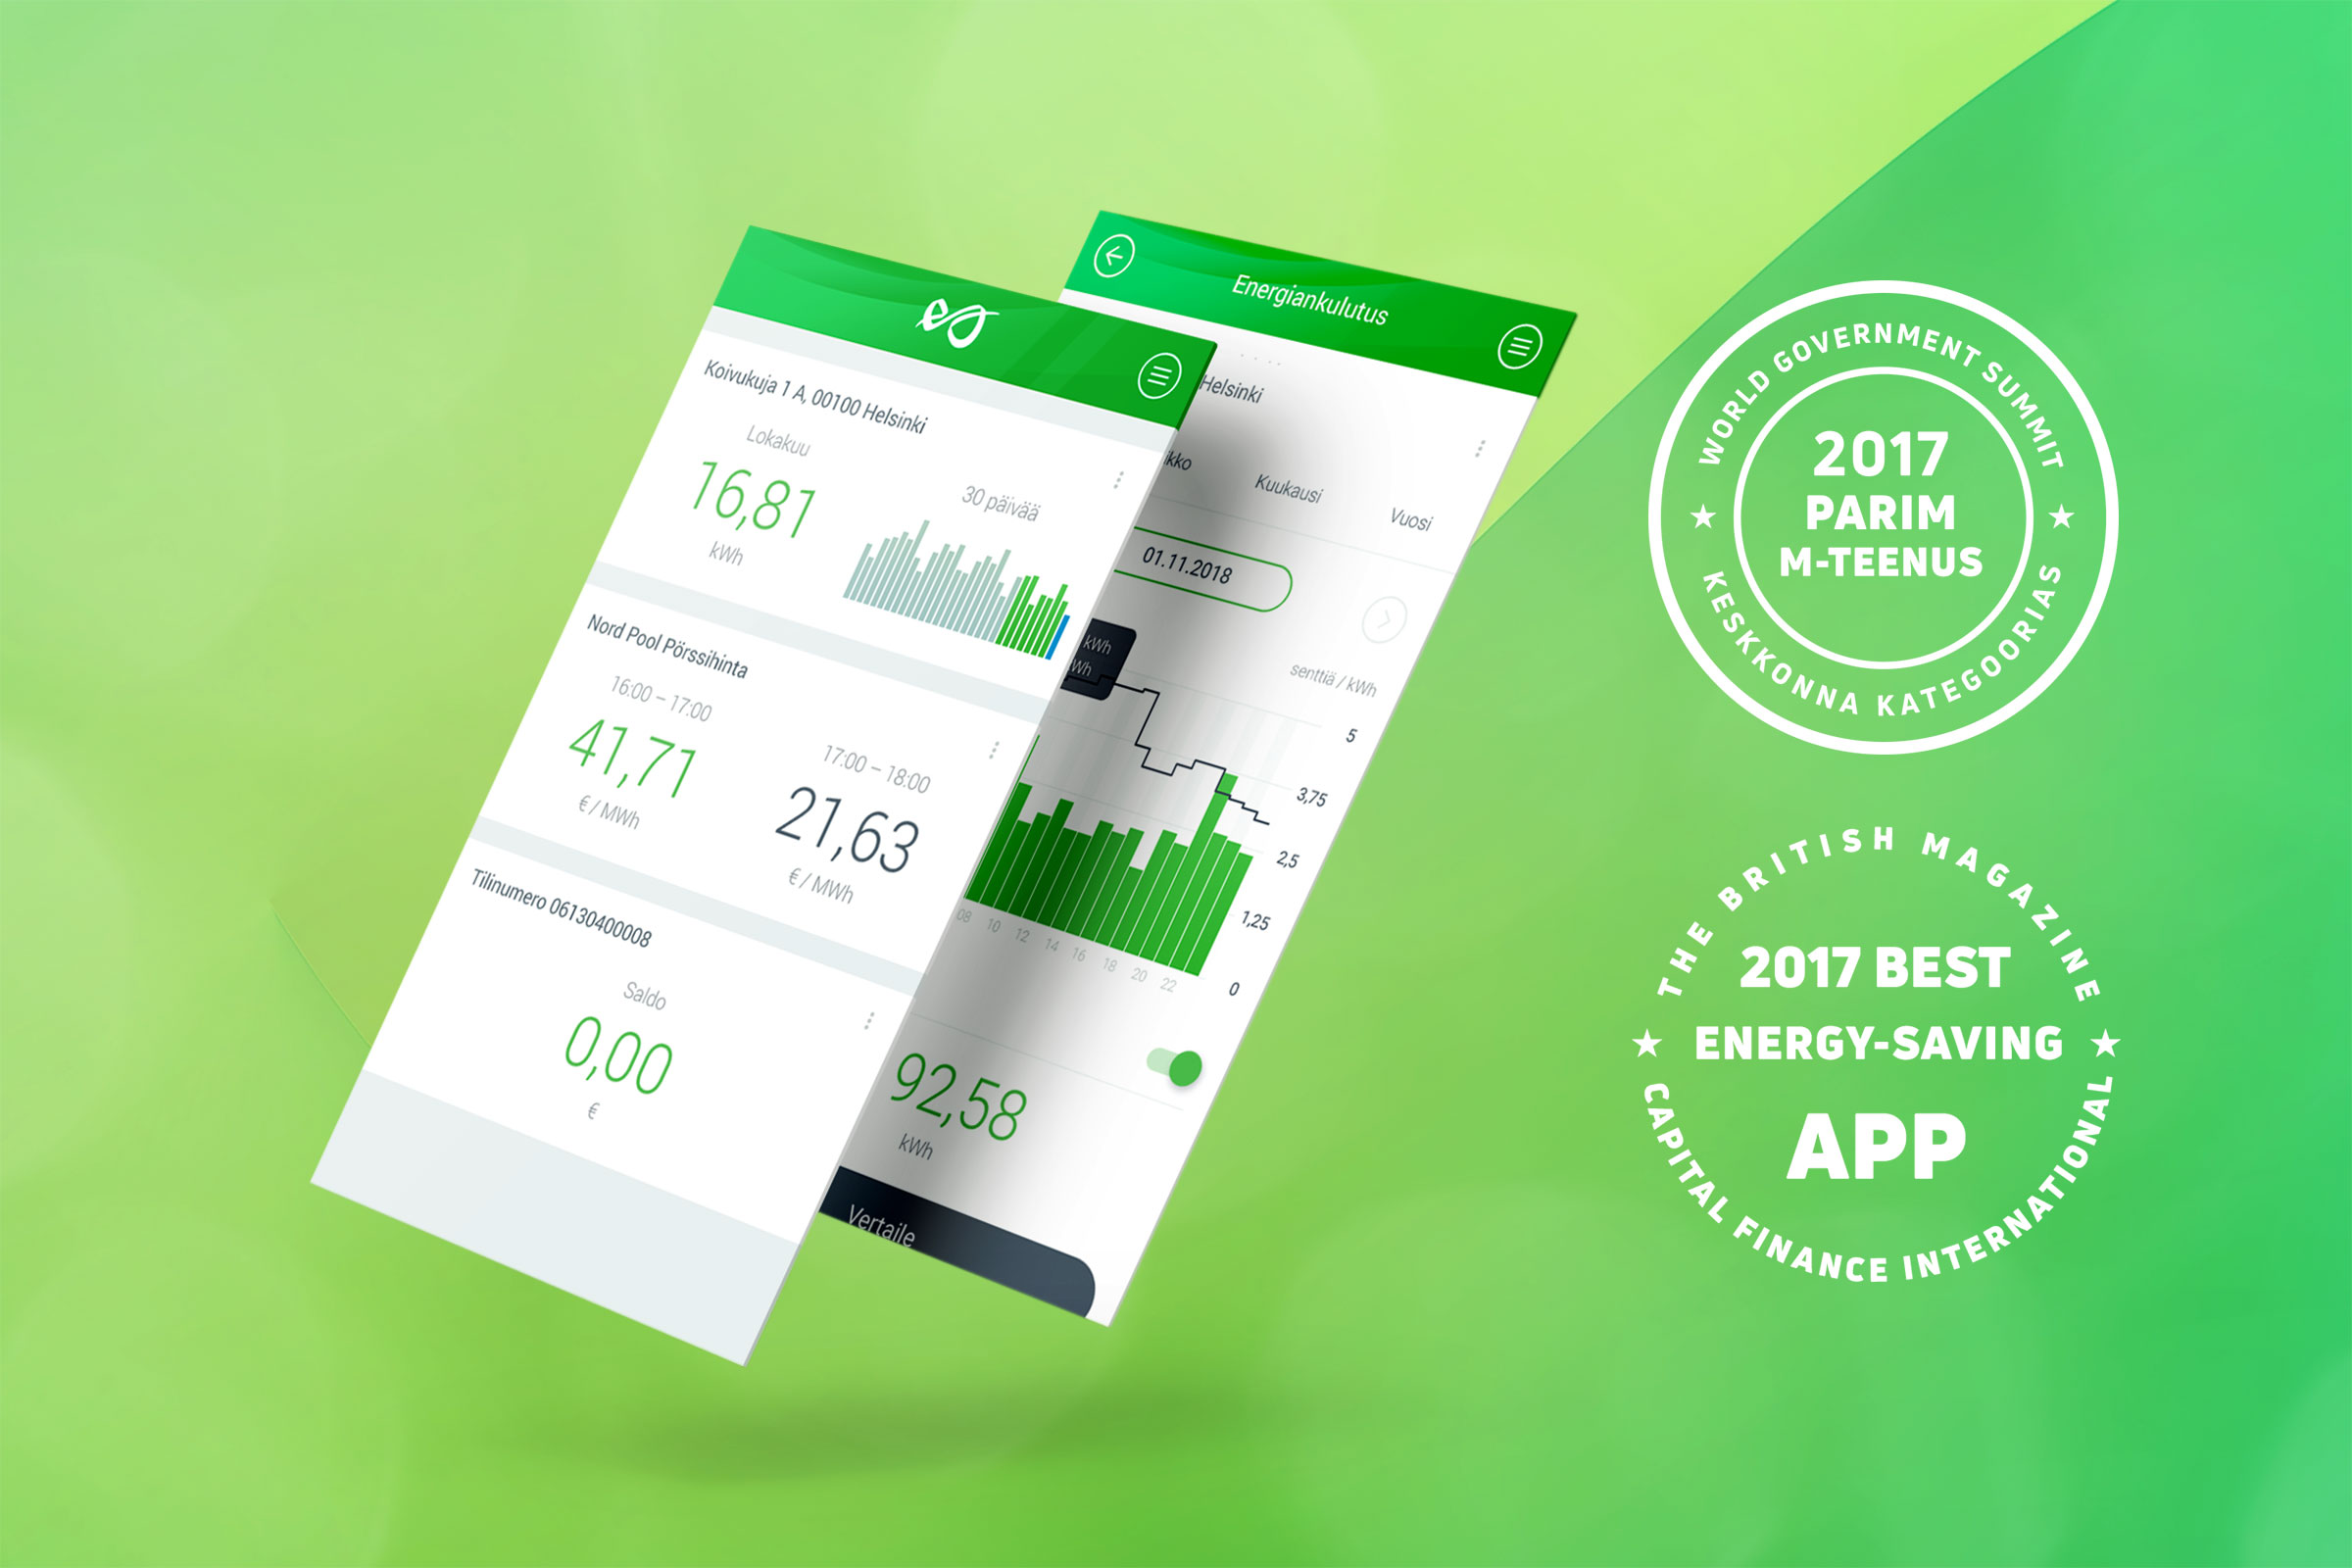 2017 best energy-saving app